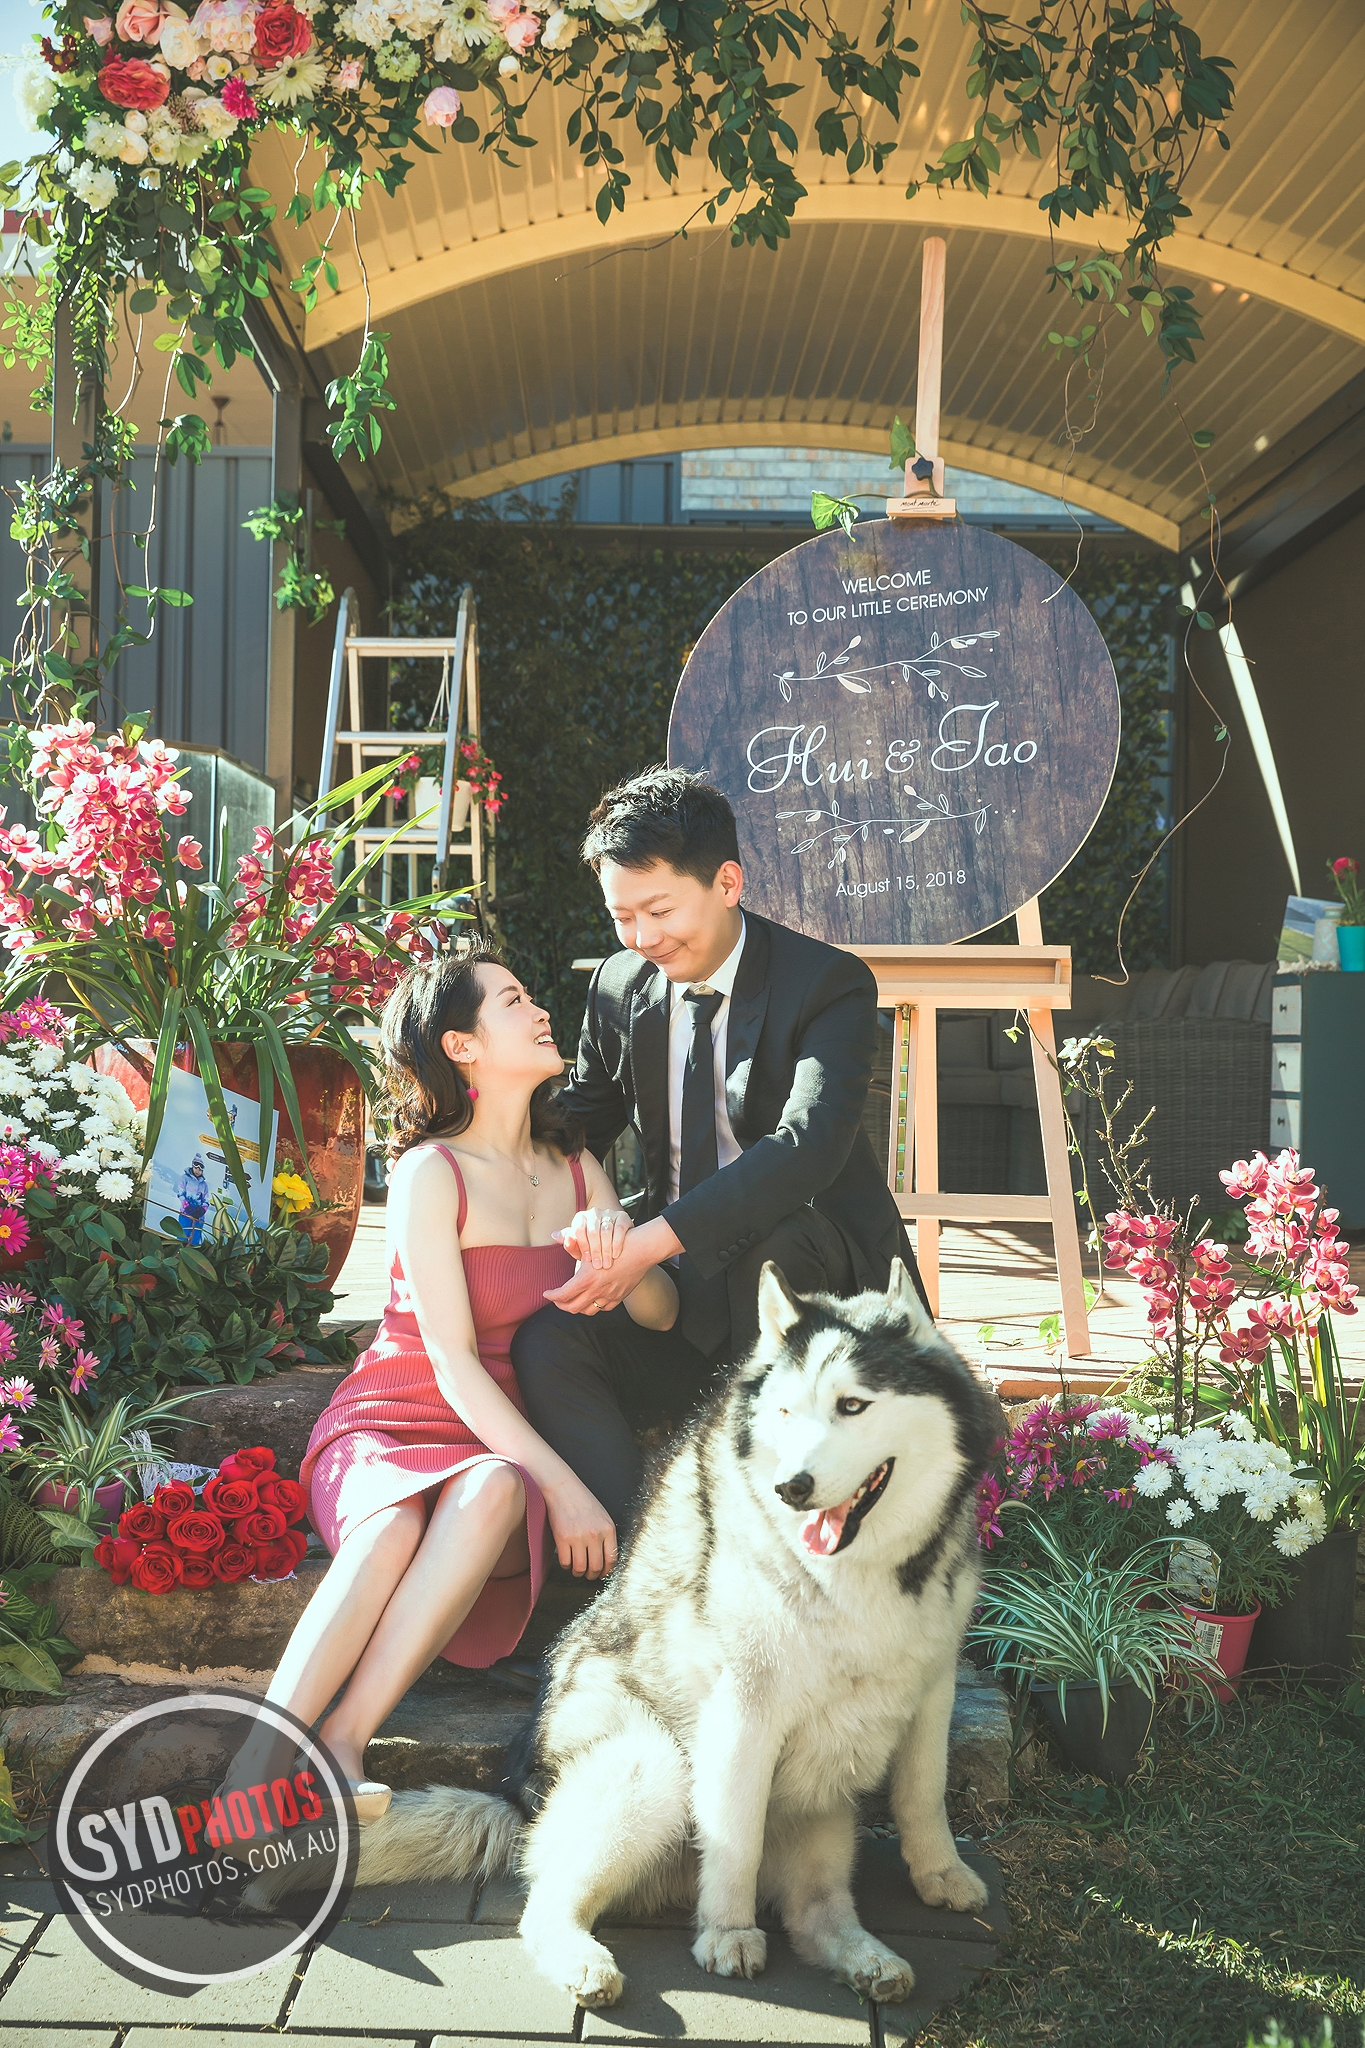 ID-103903-20180815-wedding-Hui-dylan-204.jpg, By Photographer Prewedding, Created on 26 Oct 2018, SYDPHOTOS Photography all rights reserved.